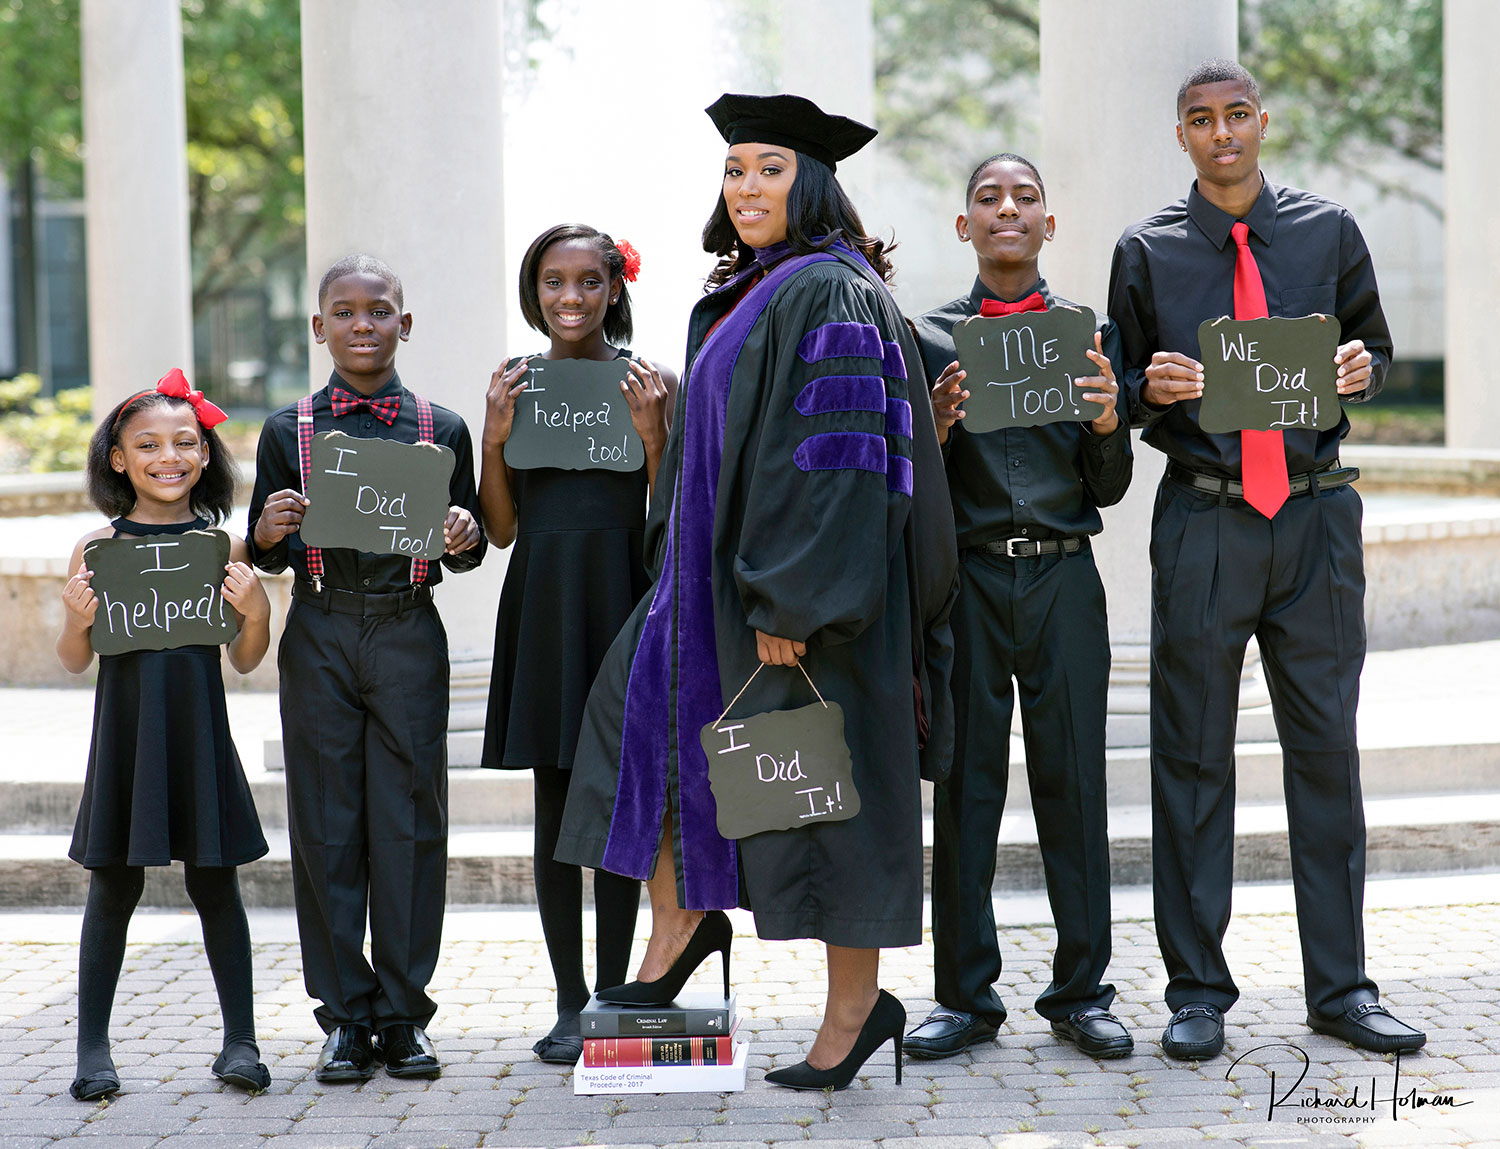 Mom of Five, Once a High School Dropout, Graduates from Law School with Help from Her Kids